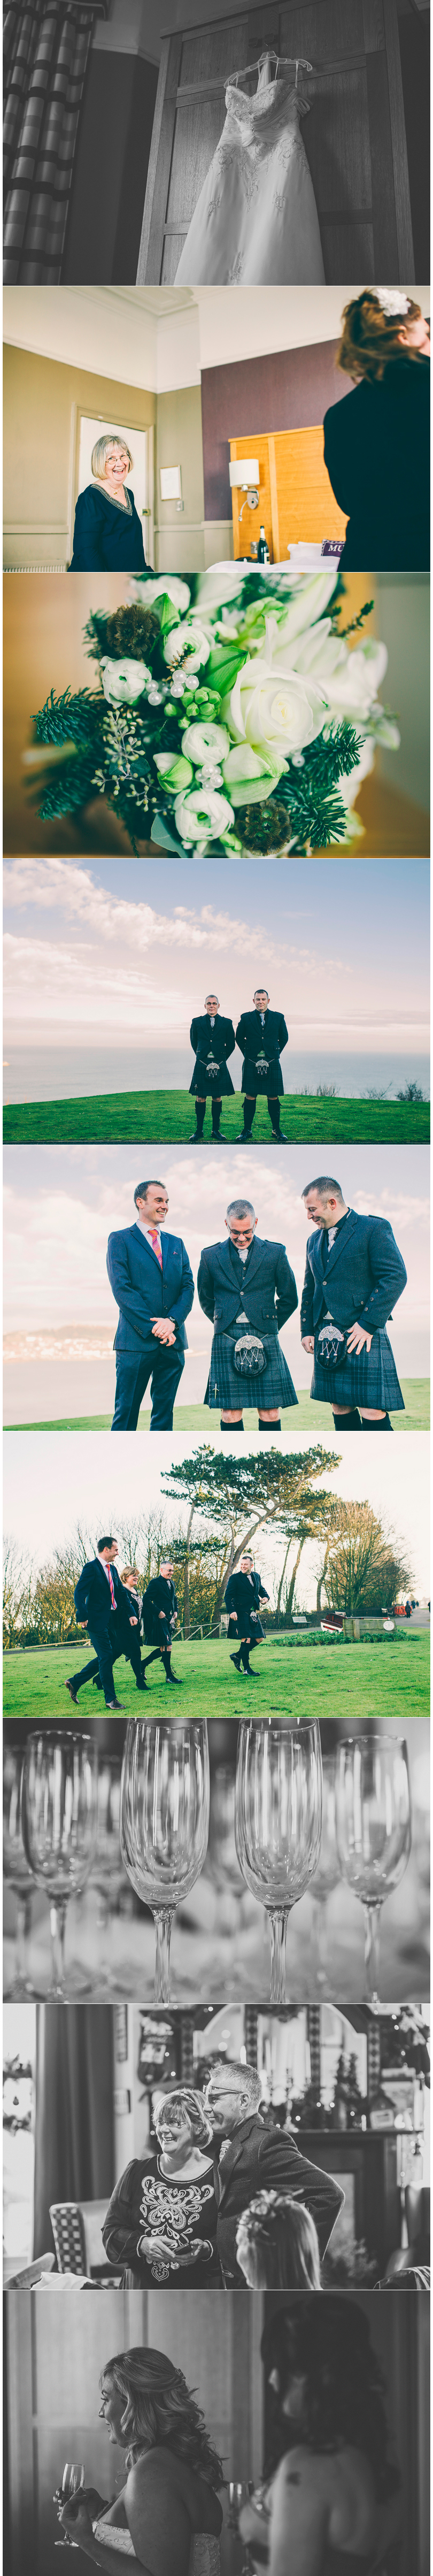 Neil_Jackson_Photographic_Scarborough_York_Yorkshire_Wedding_Photographer_Dy_Graeme_Ambassador_Spa_Hotel_Scarborough_Blog2